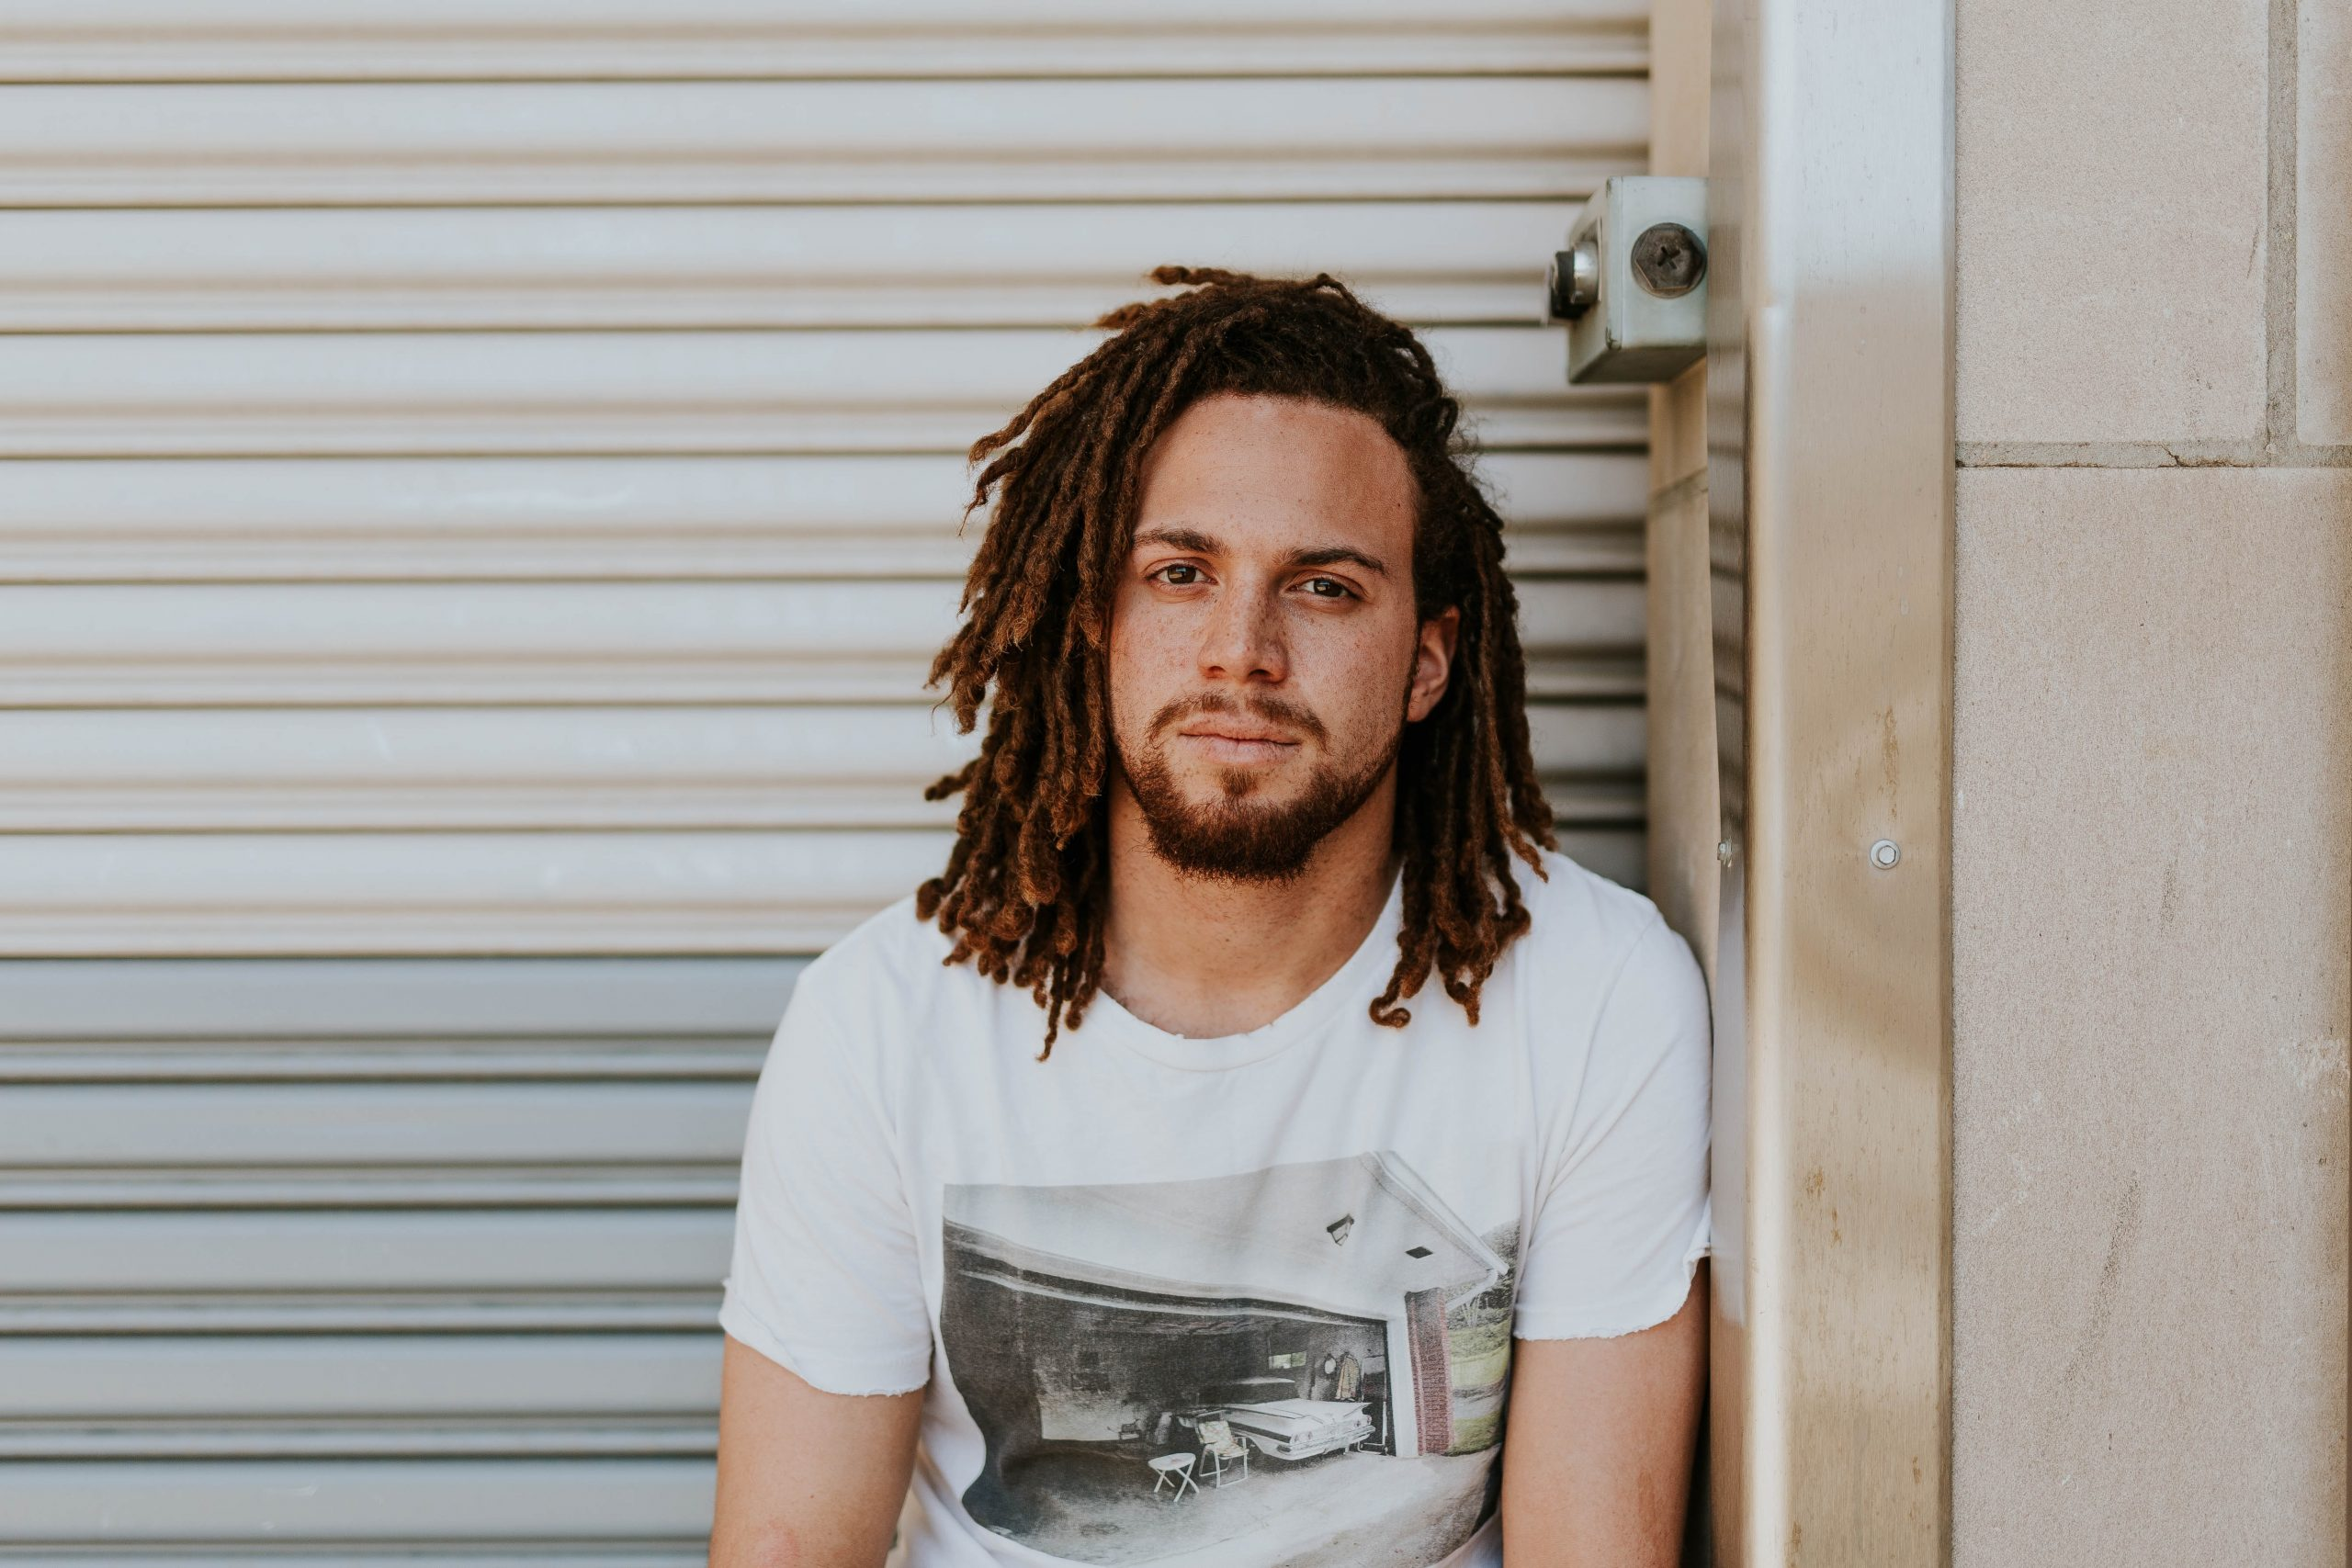 A man with dread locks and a white t shirt looking at the camera